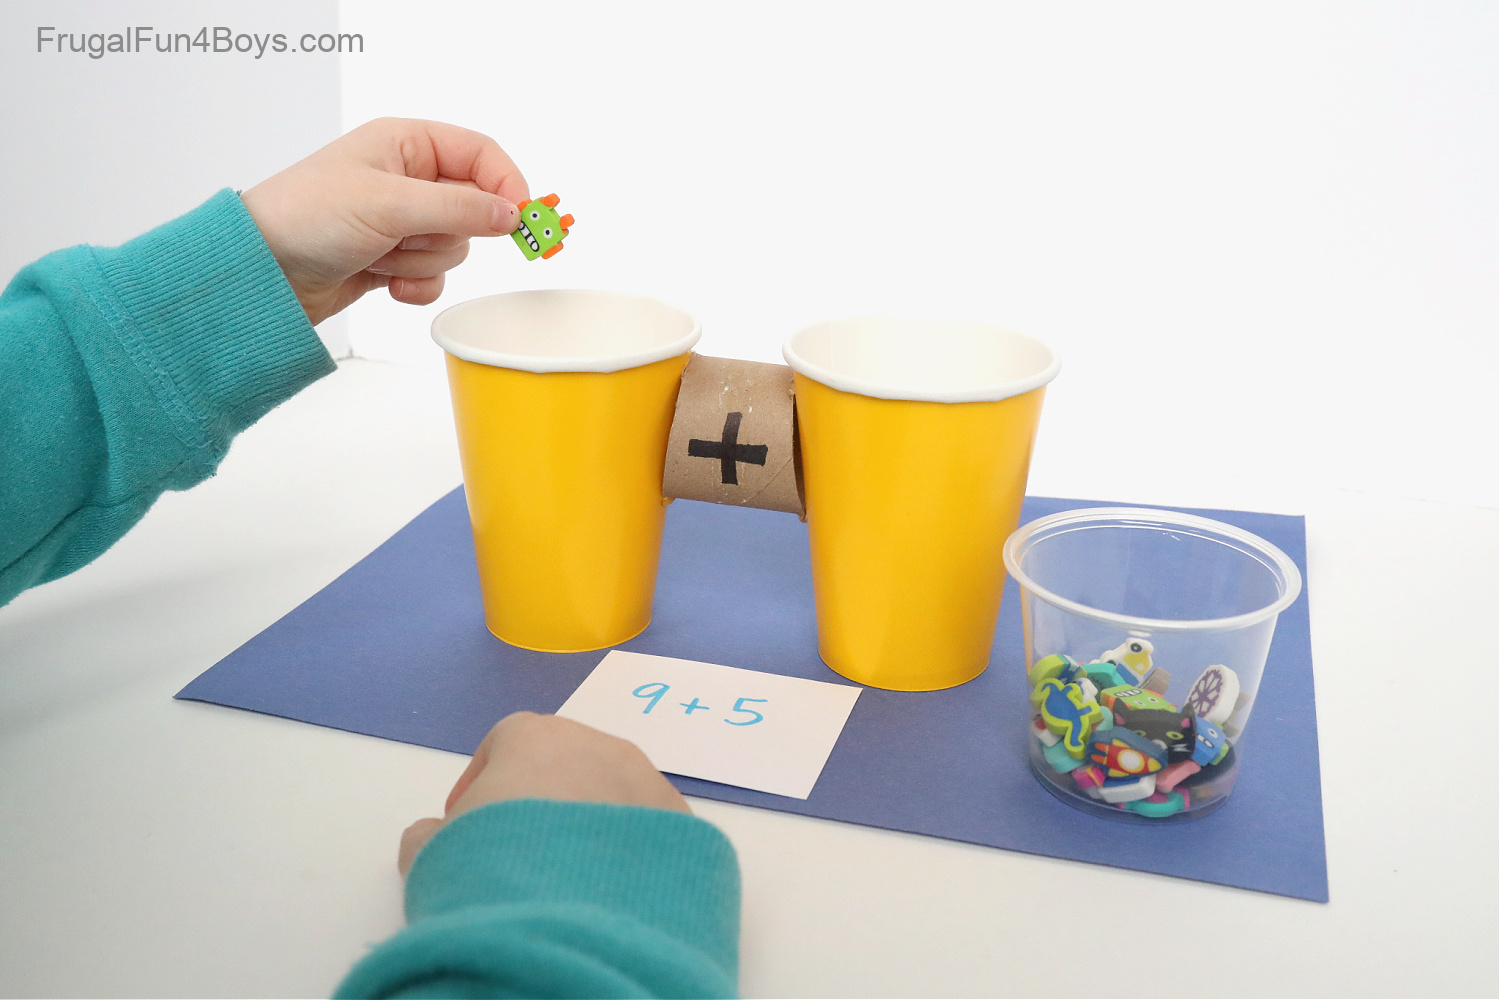 addition activities with simple supplies